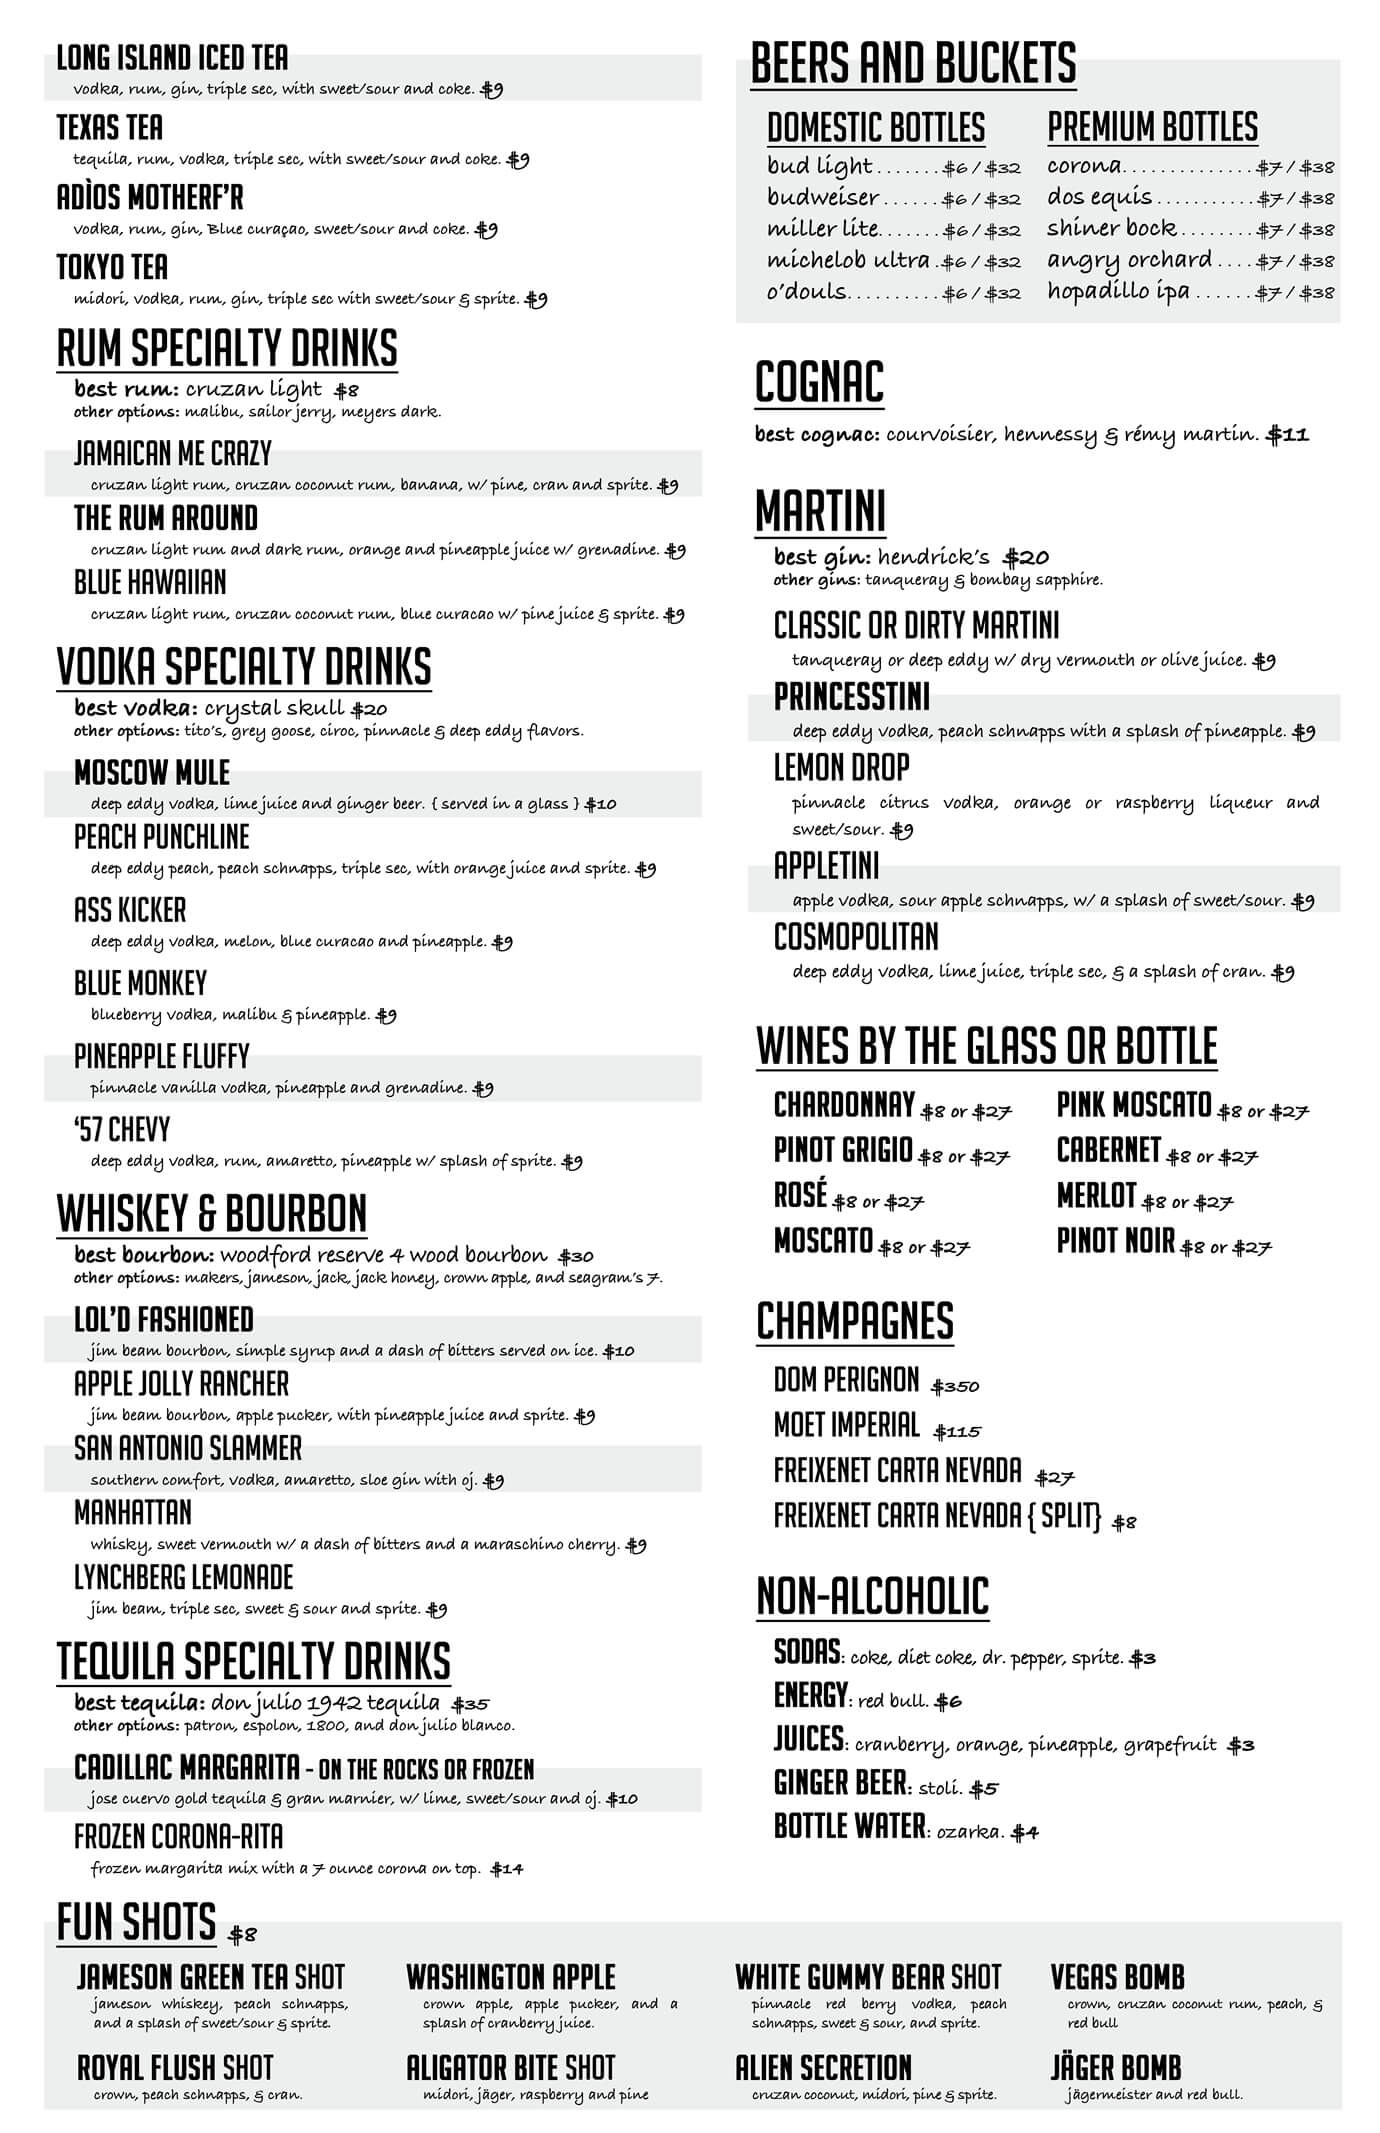 LOL San Antonio Drink Menu